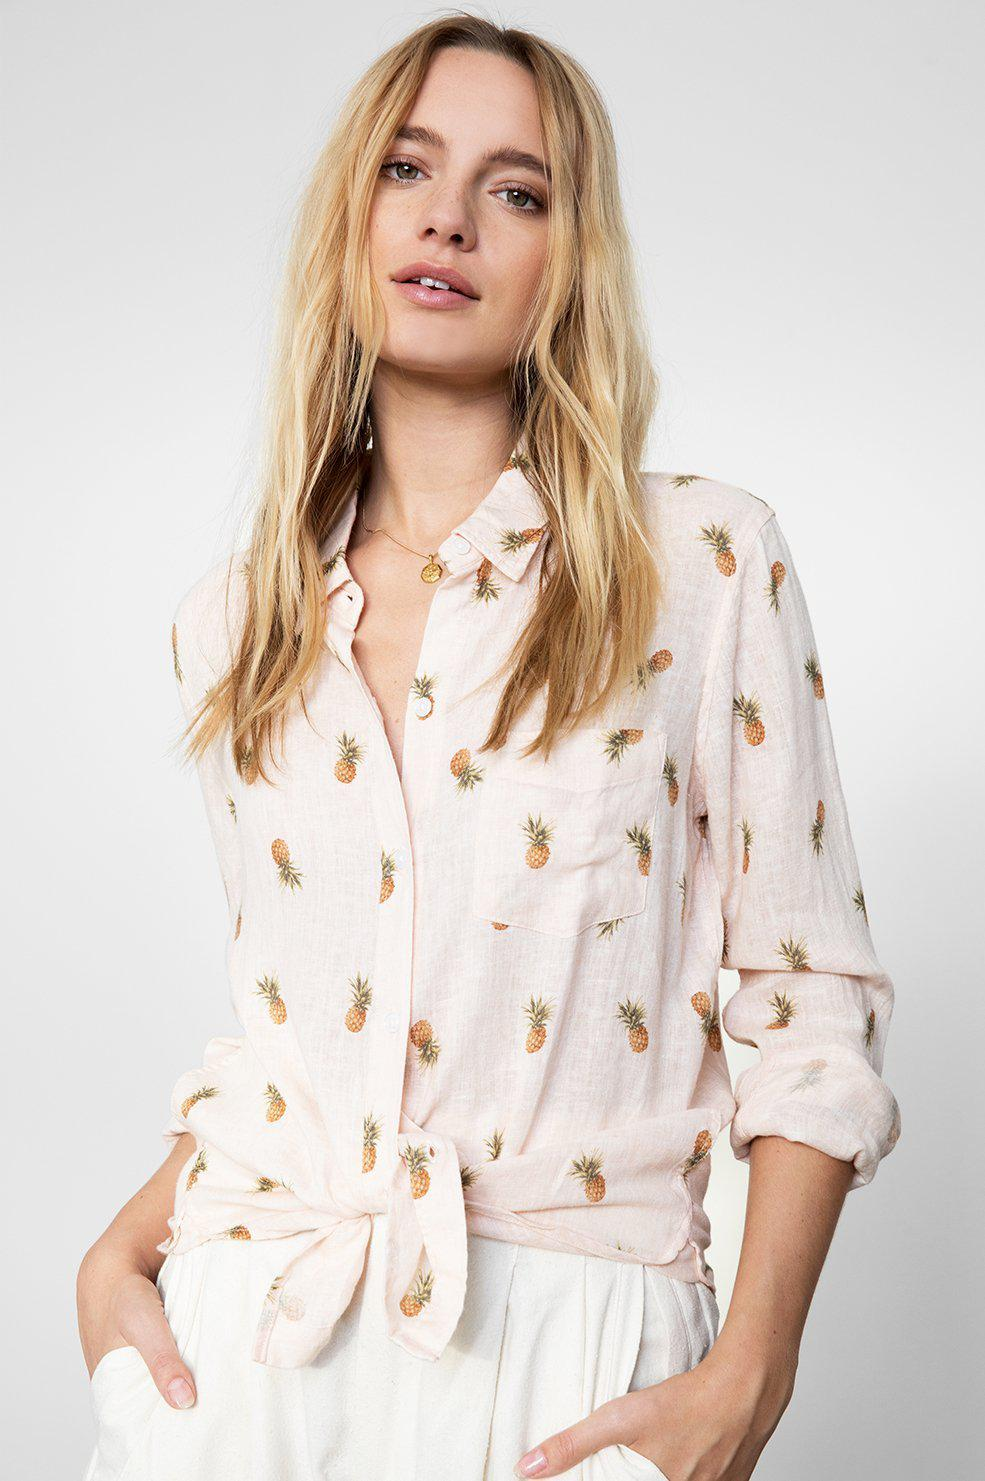 RAILS CLOTHING - Charli Shirt online at PAYA boutique